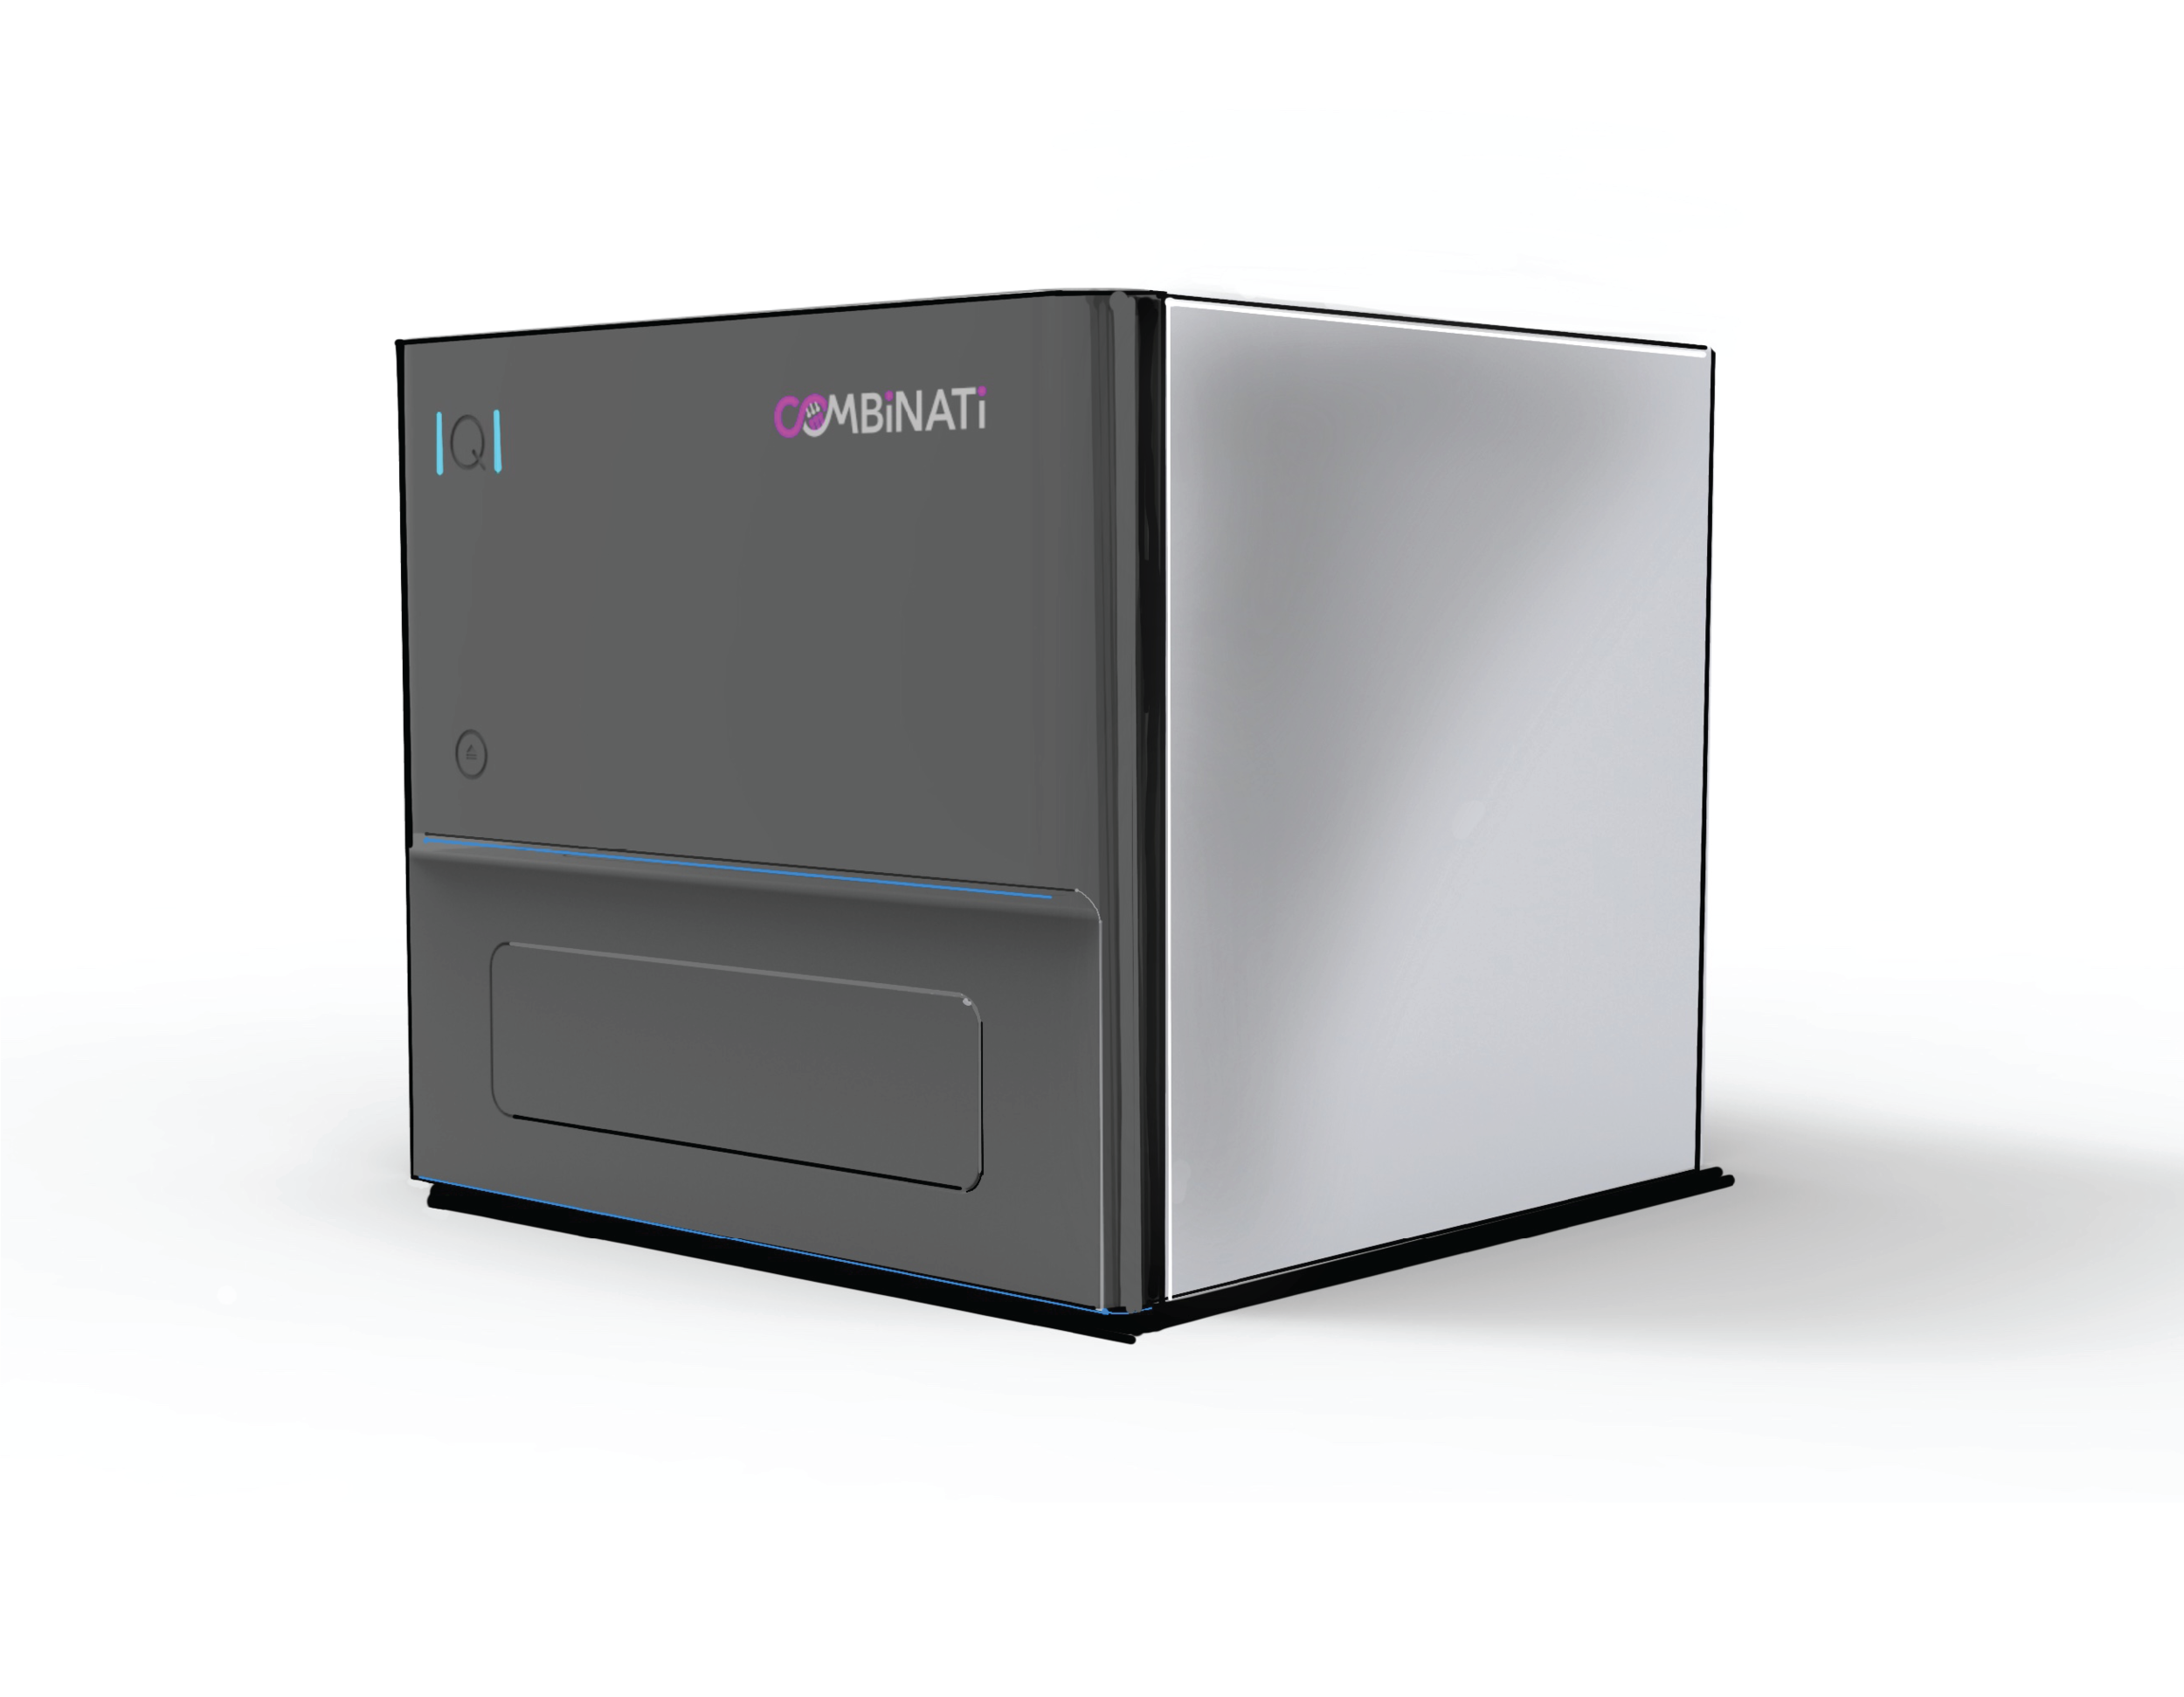 The COMBiNATi |Q| Digital PCR Platform